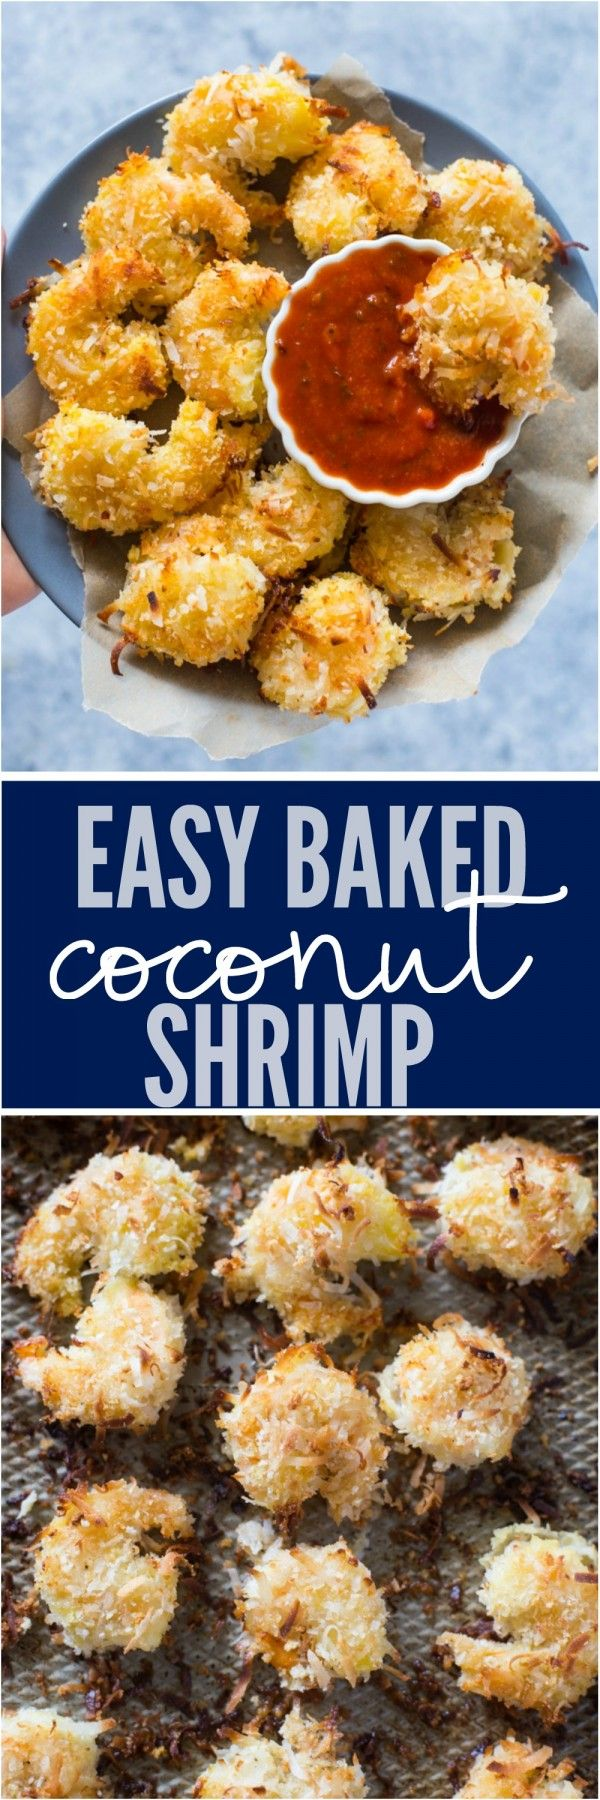 Get the recipe Easy Baked Coconut Shrimp @recipes_to_go